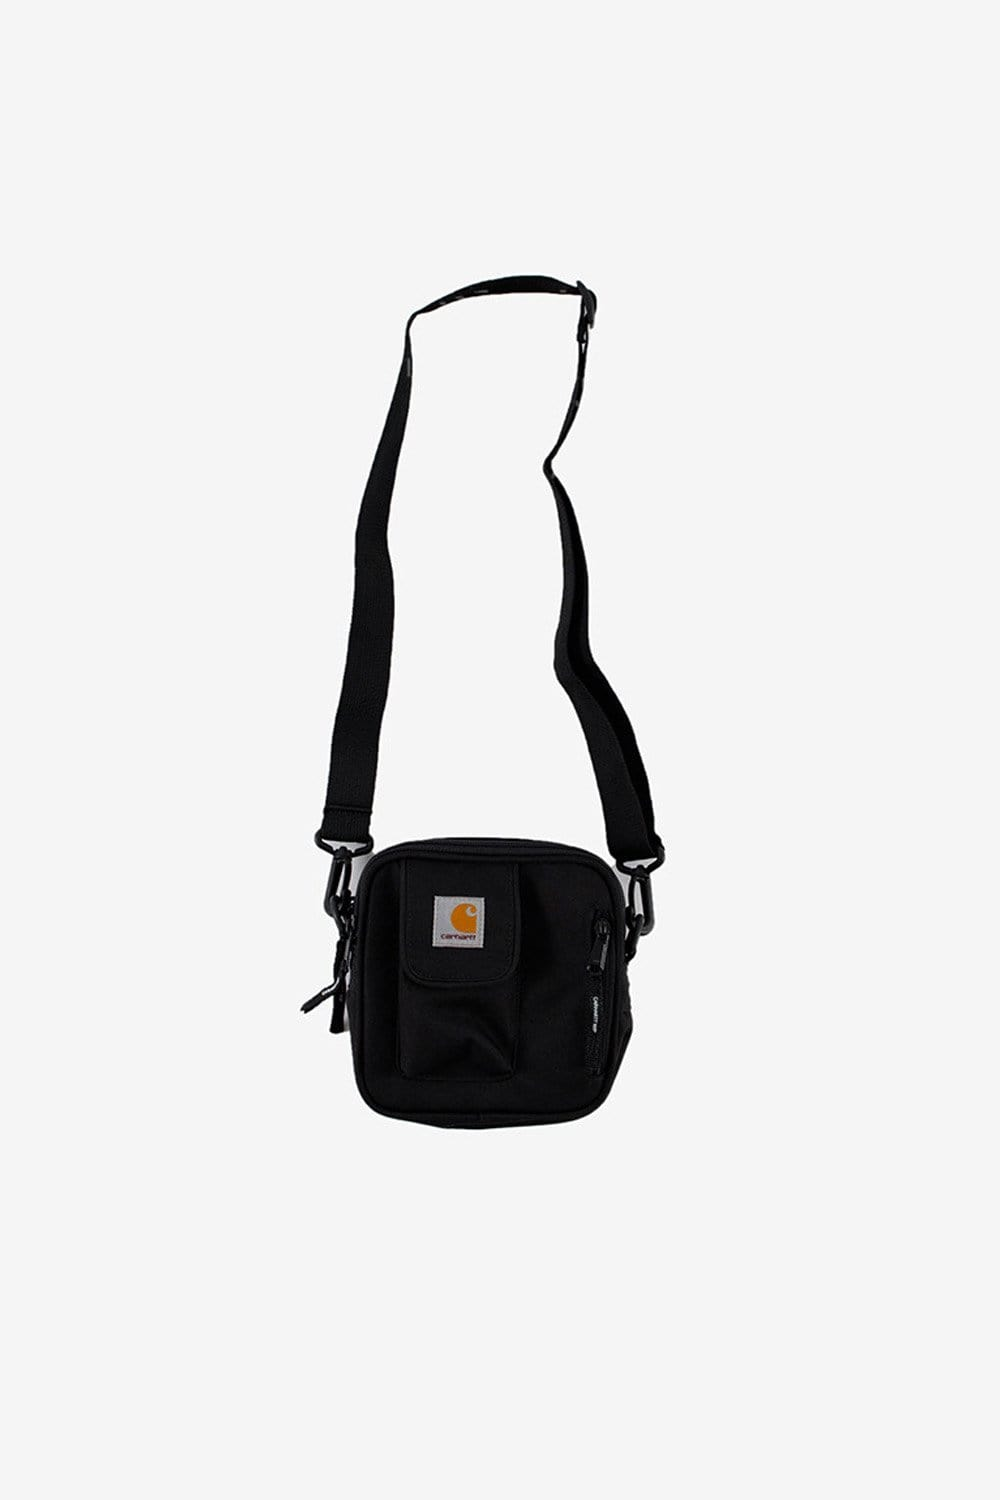 Carhartt WIP OS Essentials Bag